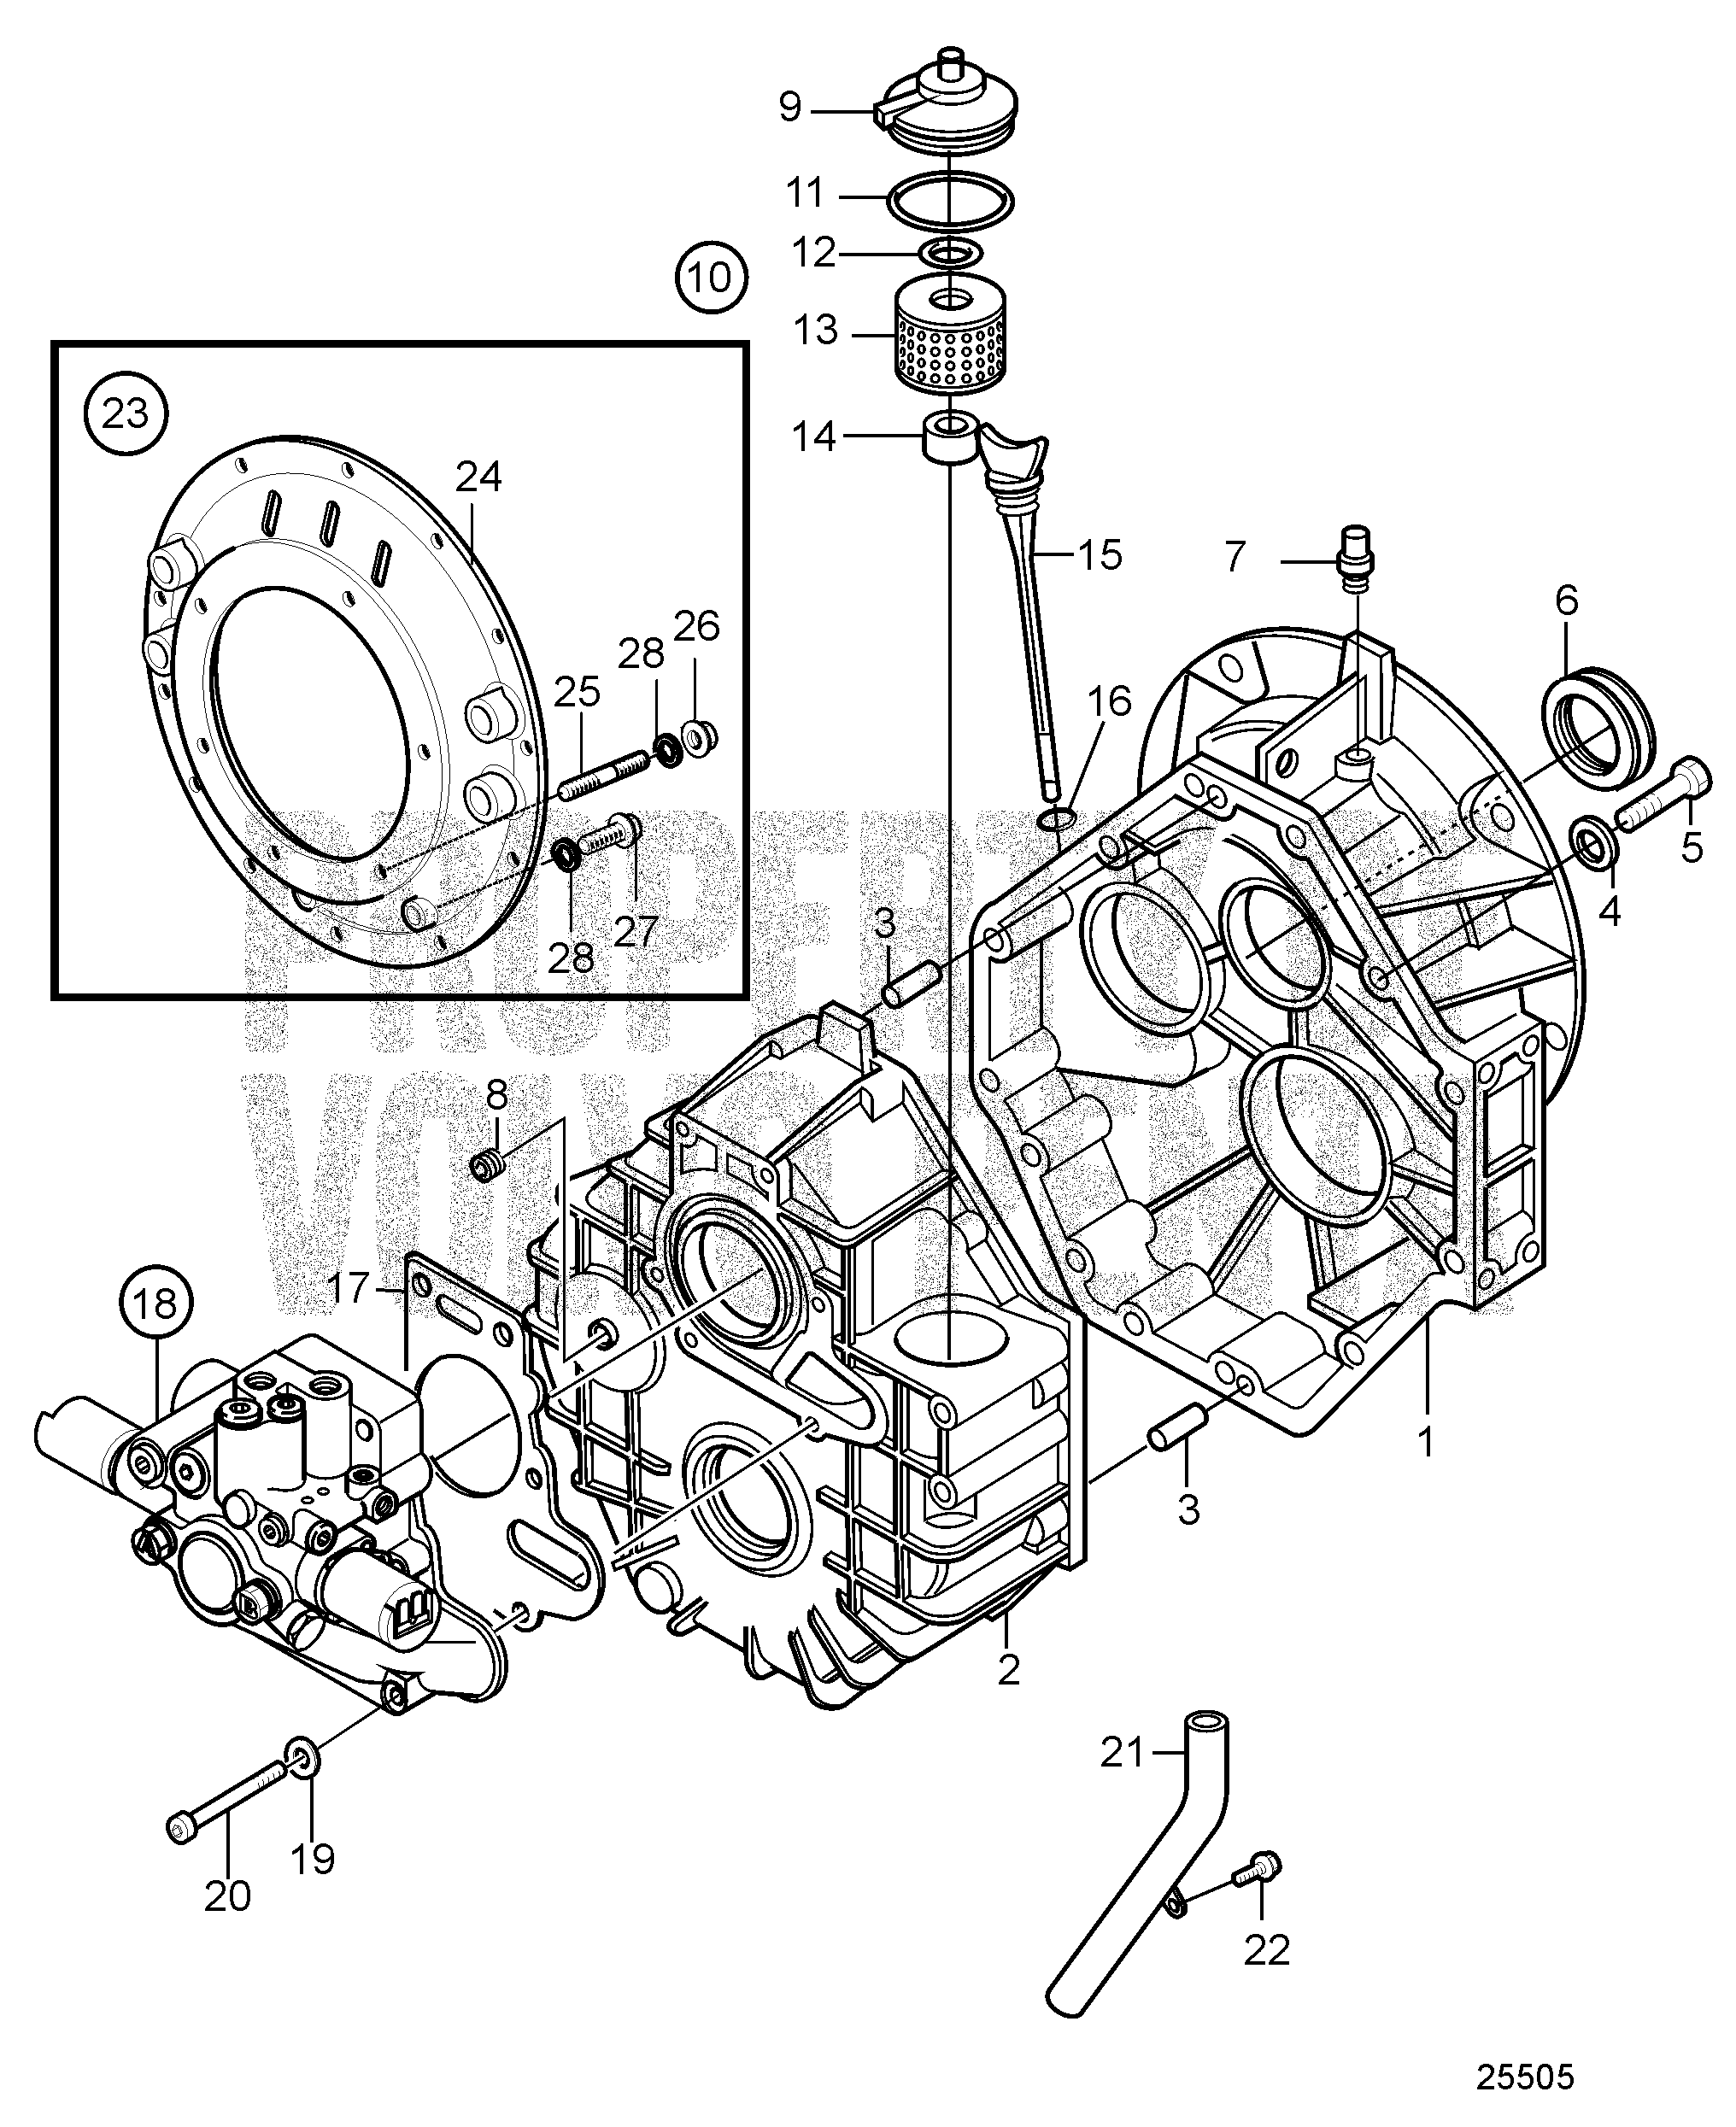 motor parts part transmissions c drives reverse marine b outboard gear no d a volvo